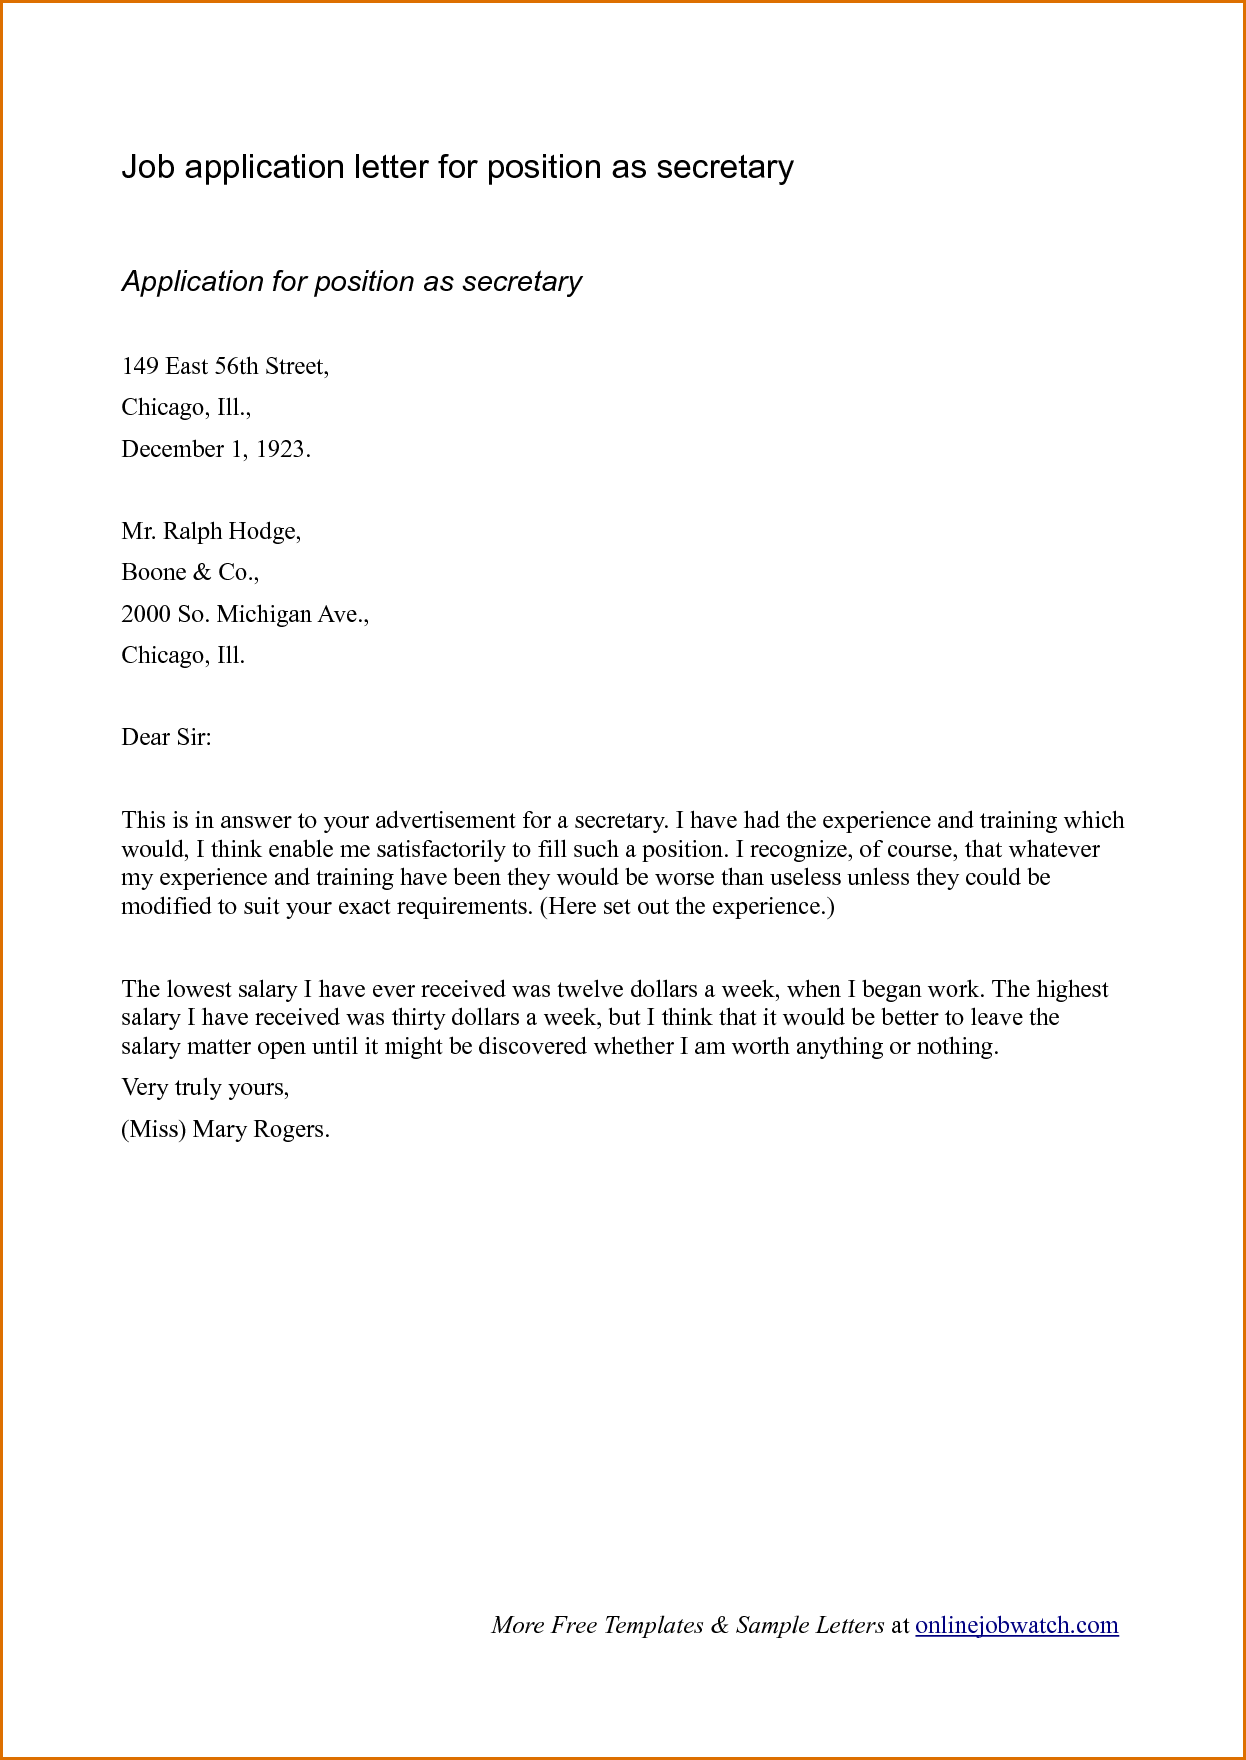 Sample cover letter format for job application for Covering letter to apply for a job